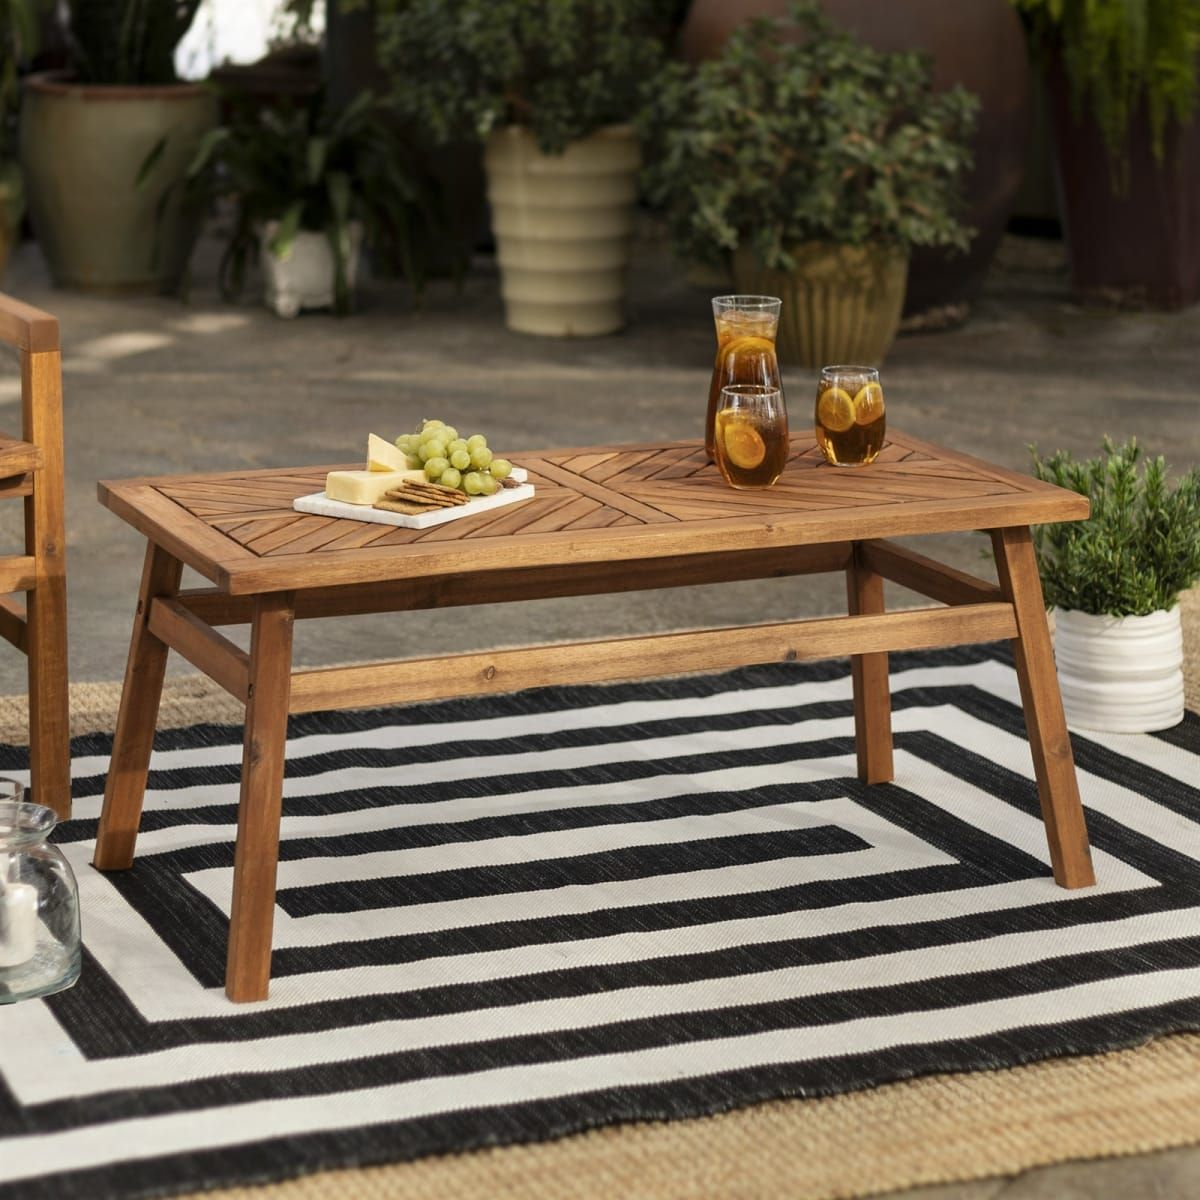 Outdoor Wood Patio Coffee Table Outdoor Coffee Tables Coffee Table Wood Wood Patio [ 1200 x 1200 Pixel ]